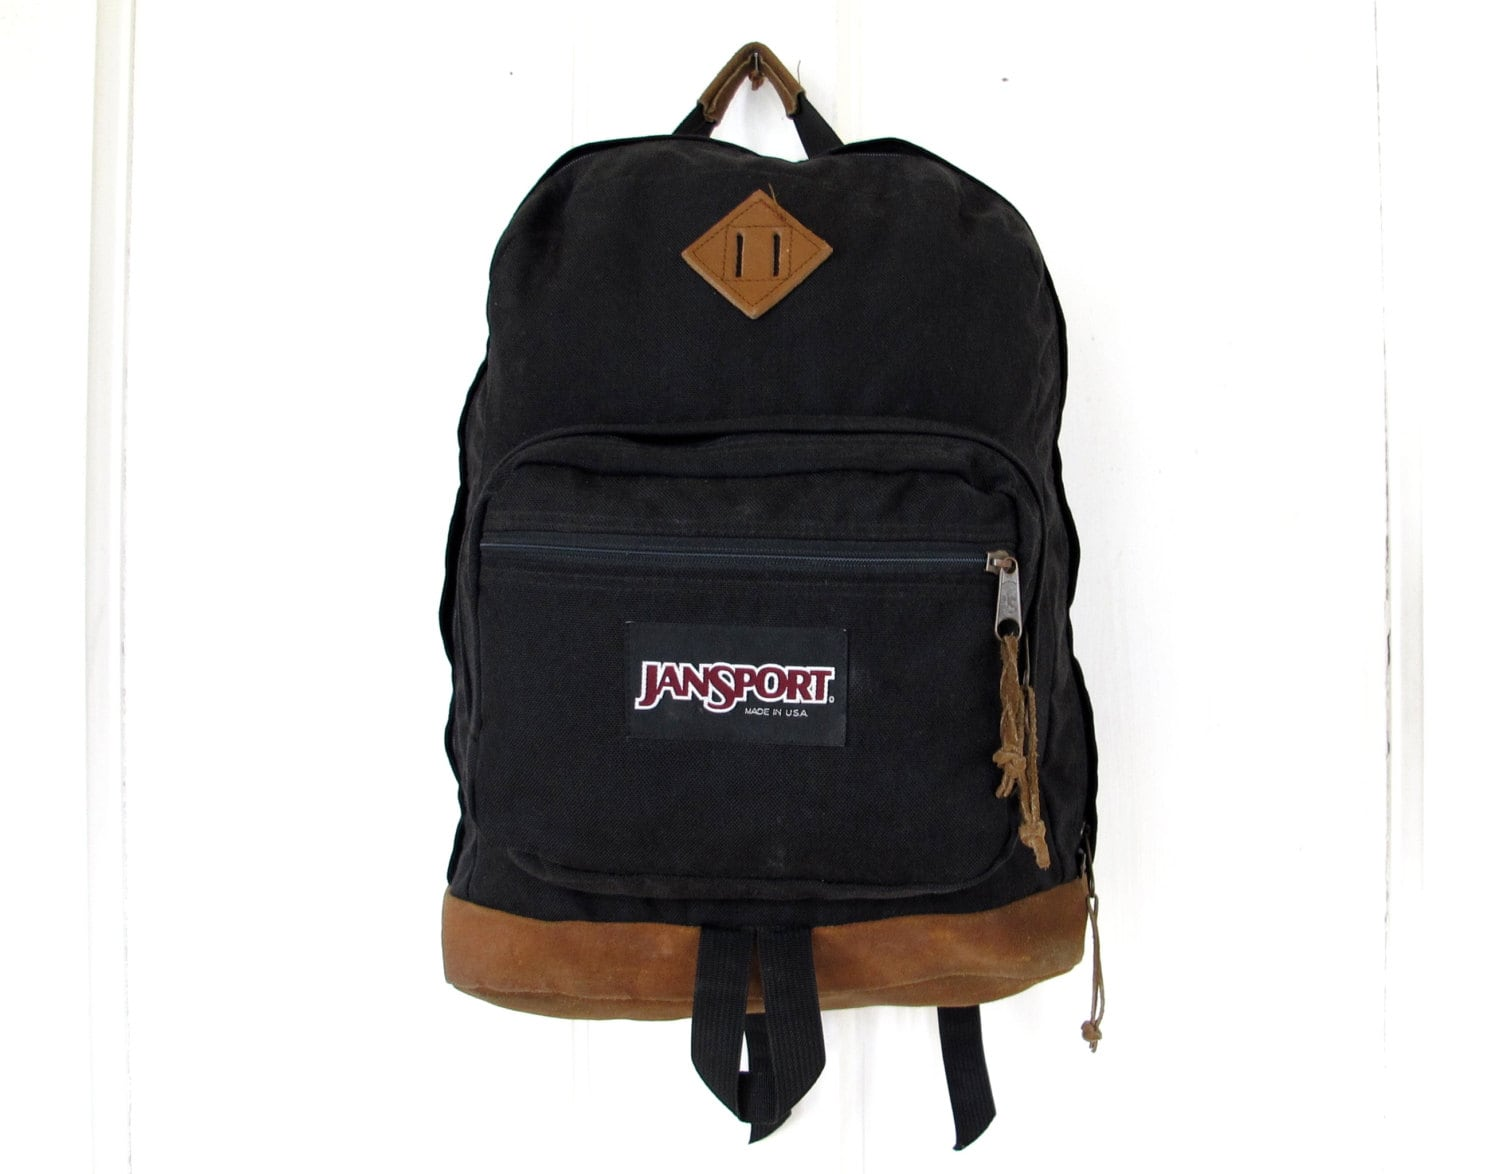 90s Black JANSPORT Backpack with Brown Leather Base